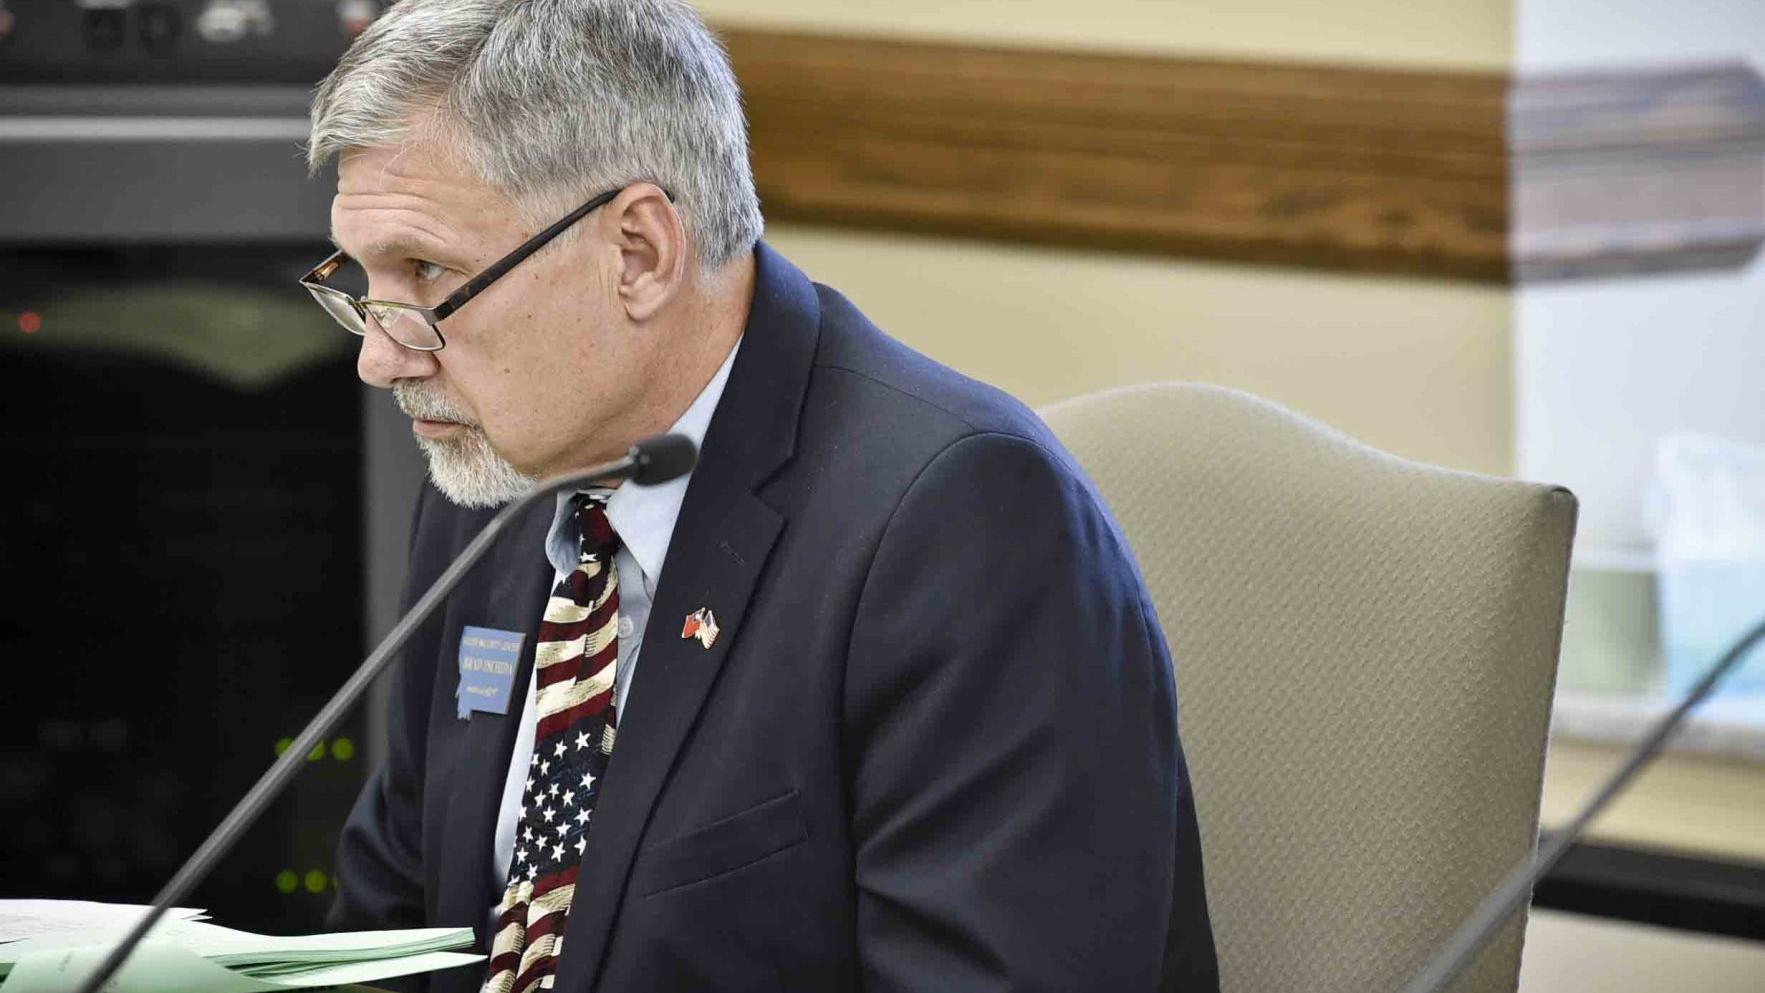 Montana to pay lawmaker $75K in ethics complaint lawsuit